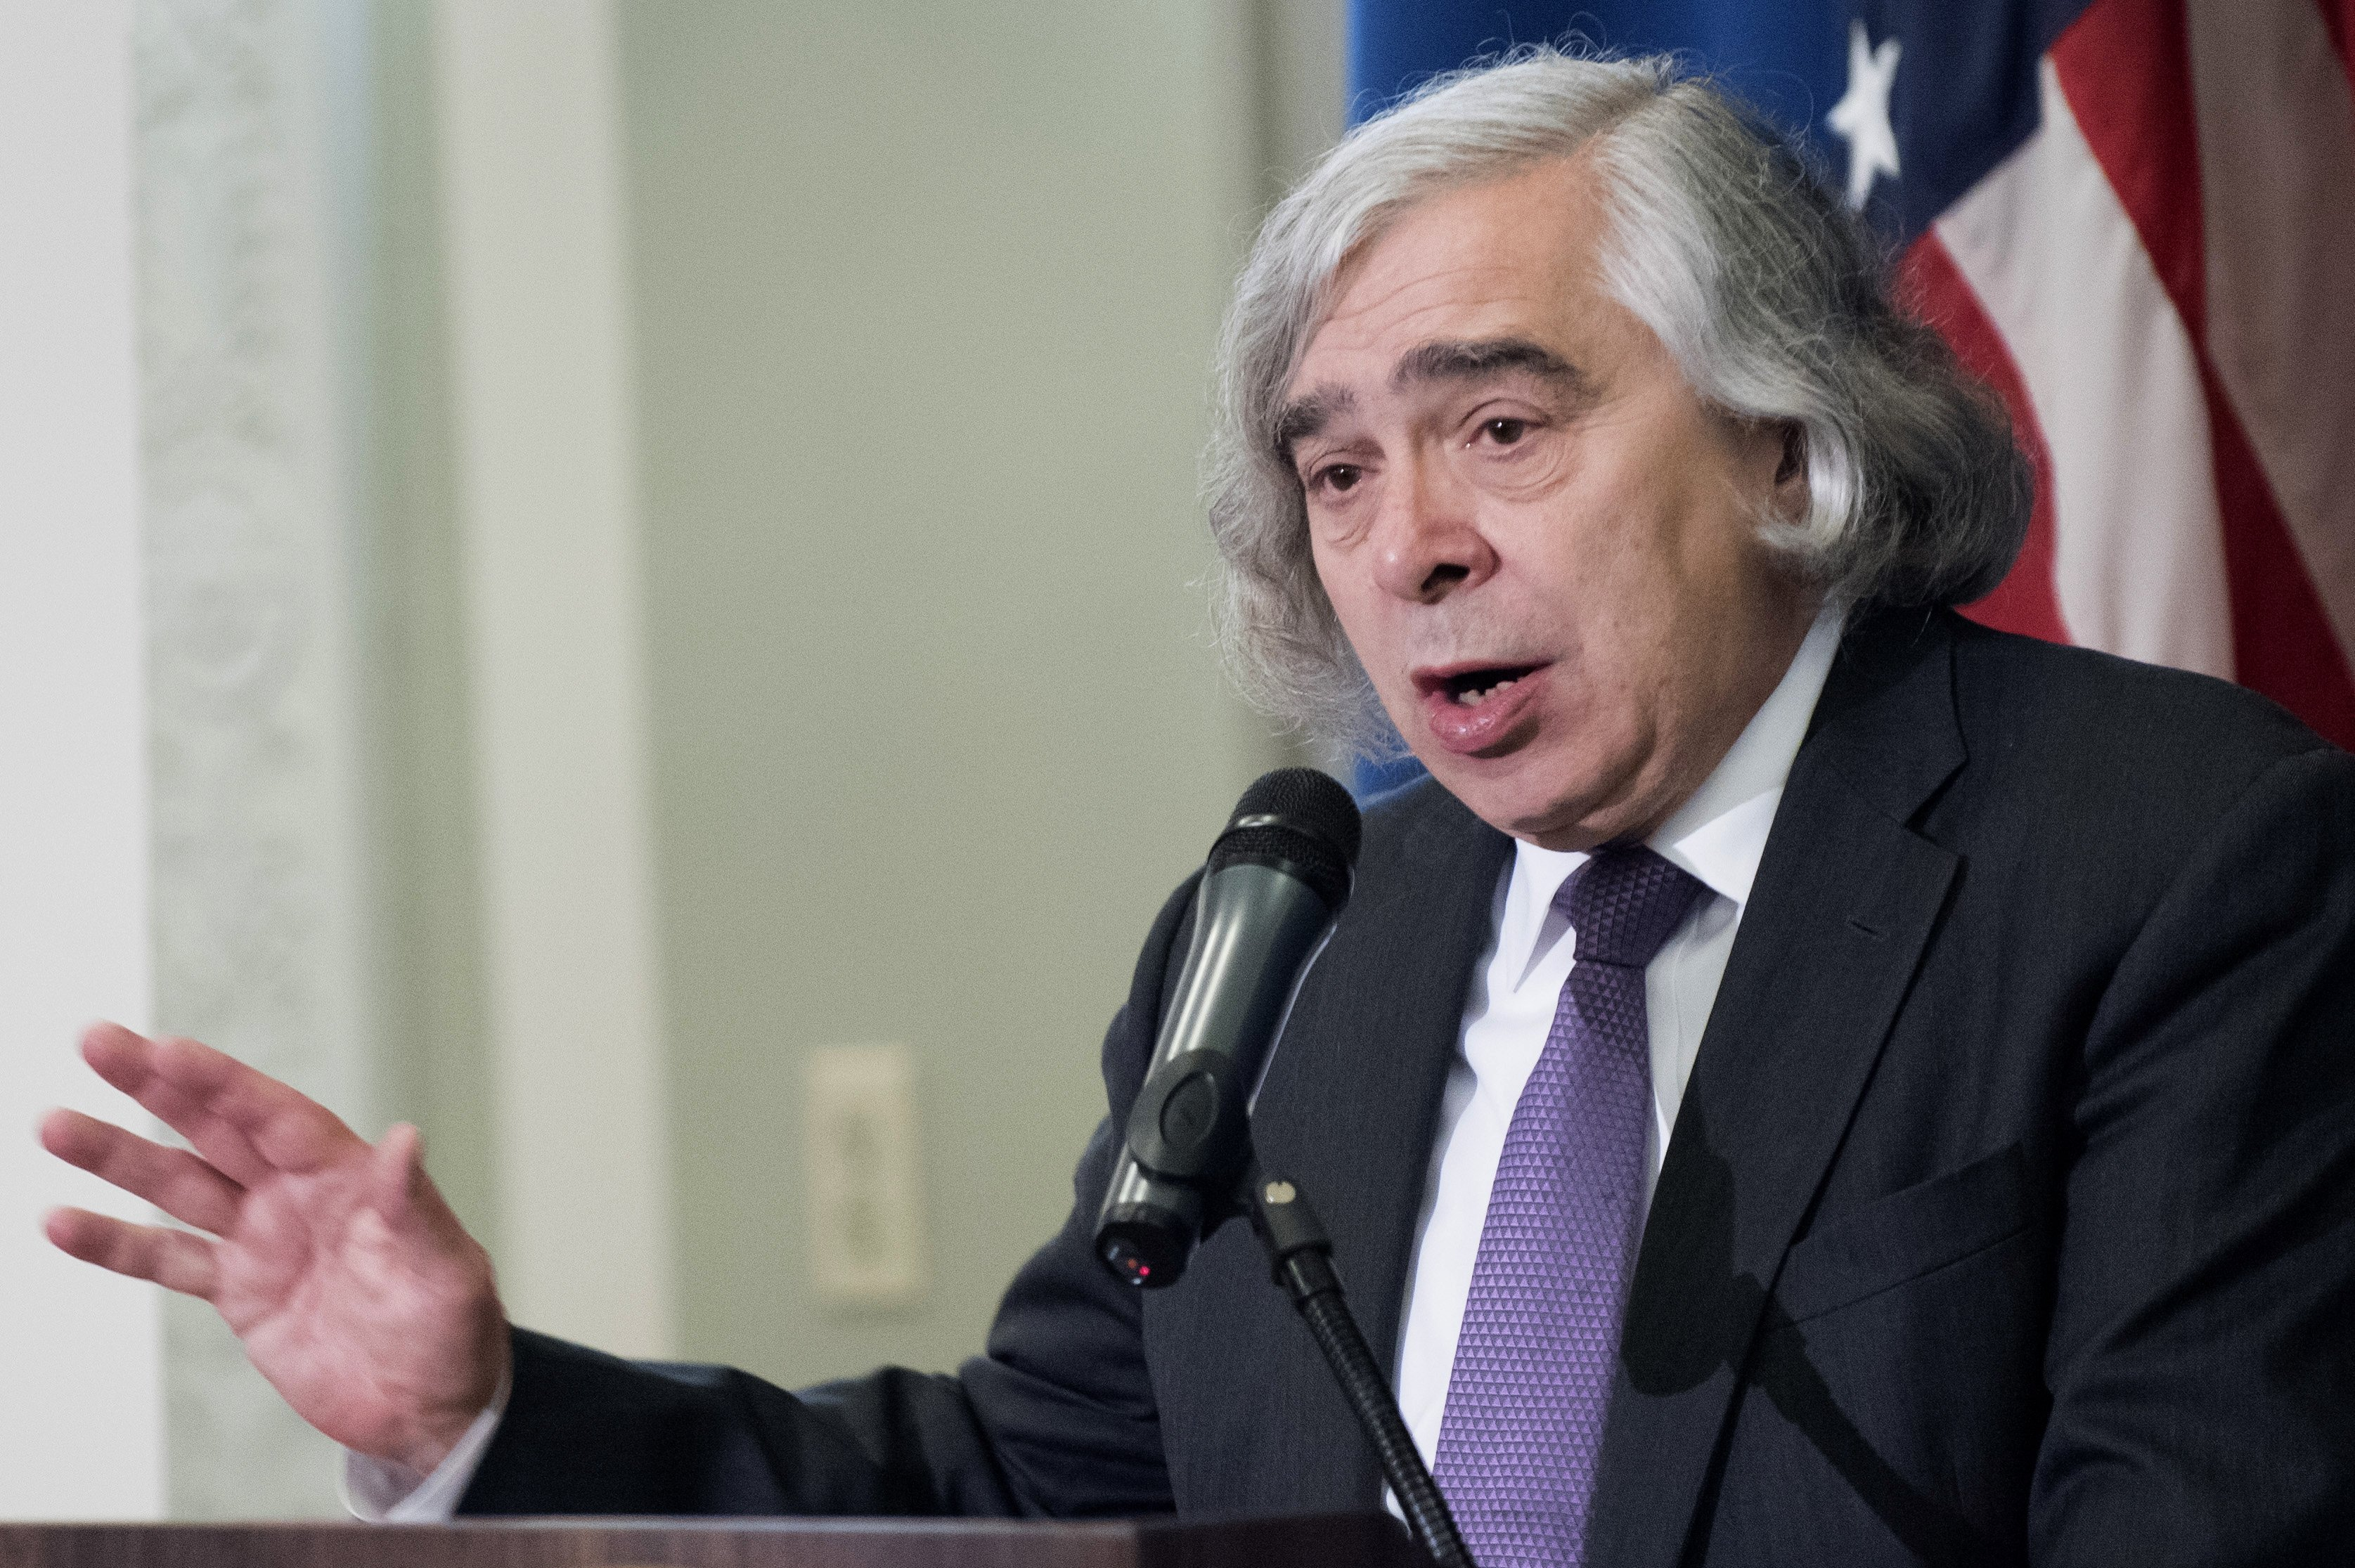 Energy Secretary Ernest Moniz speaks at a signing ceremony for a memorandum of agreement to establish the Manhattan Project National Historic Park, Tuesday, Nov. 10, 2015, at the Interior Department in Washington